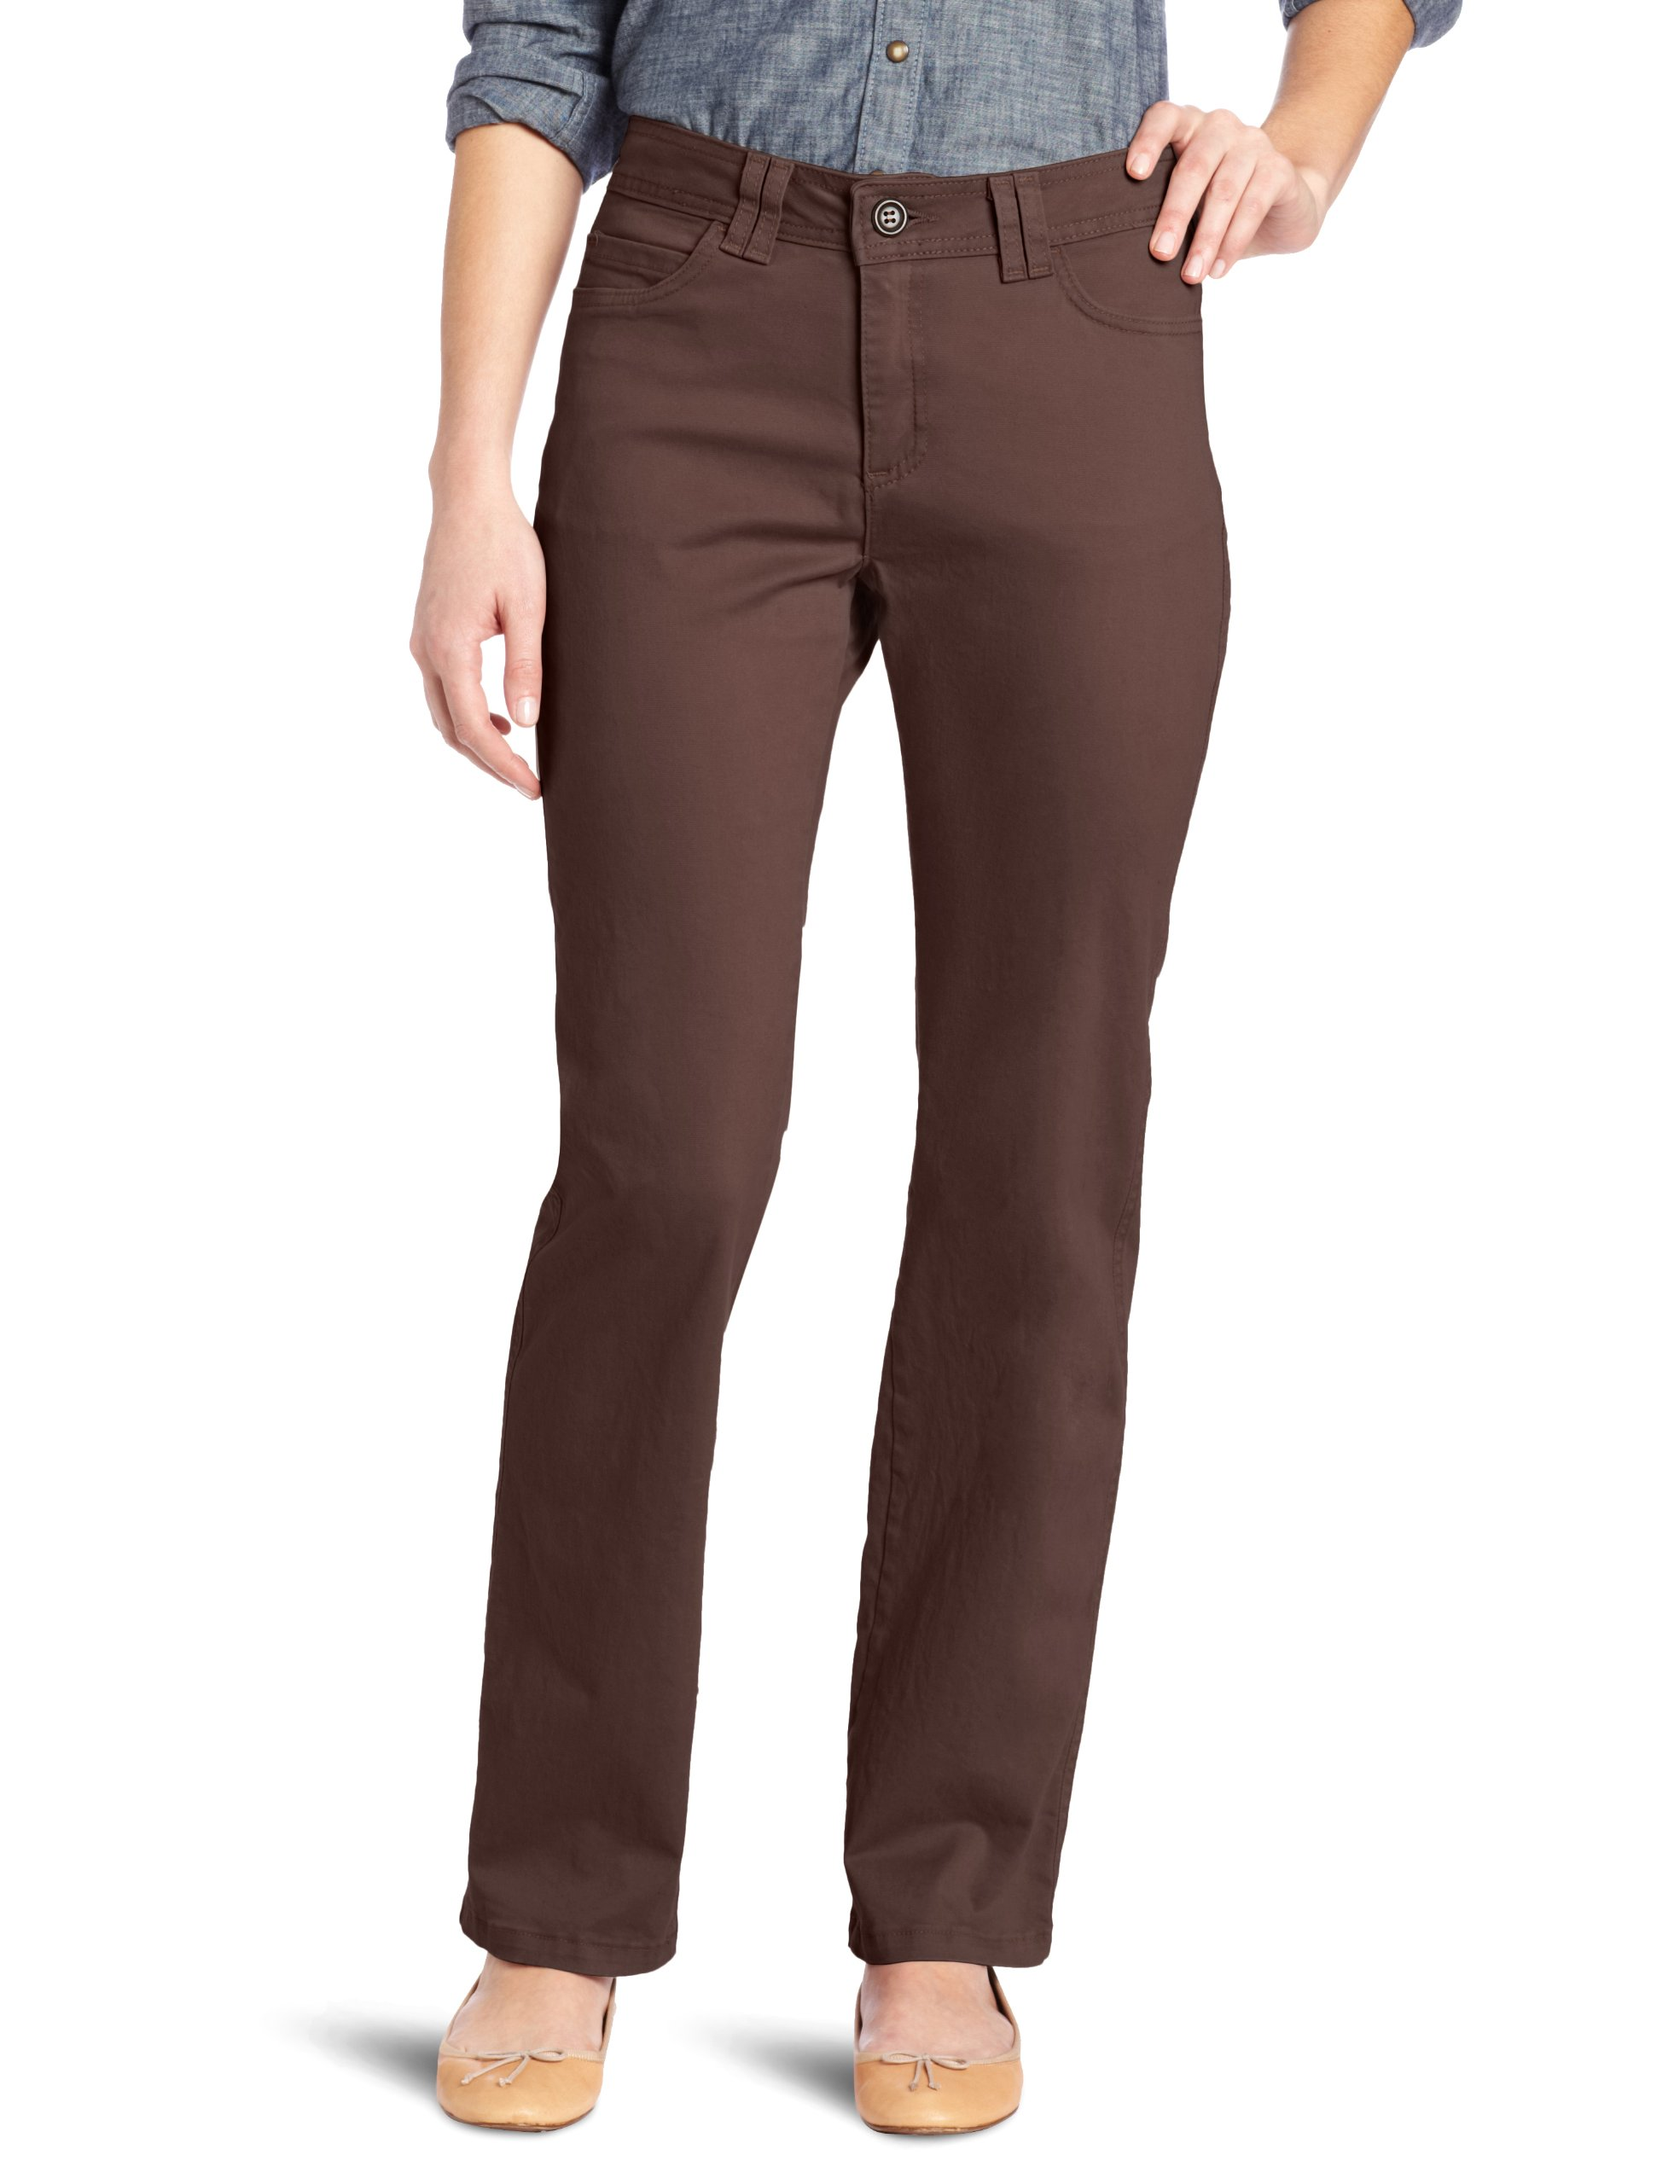 Lee Women's Classic Fit Jackie O Straight Leg Pant, French Roast, 12